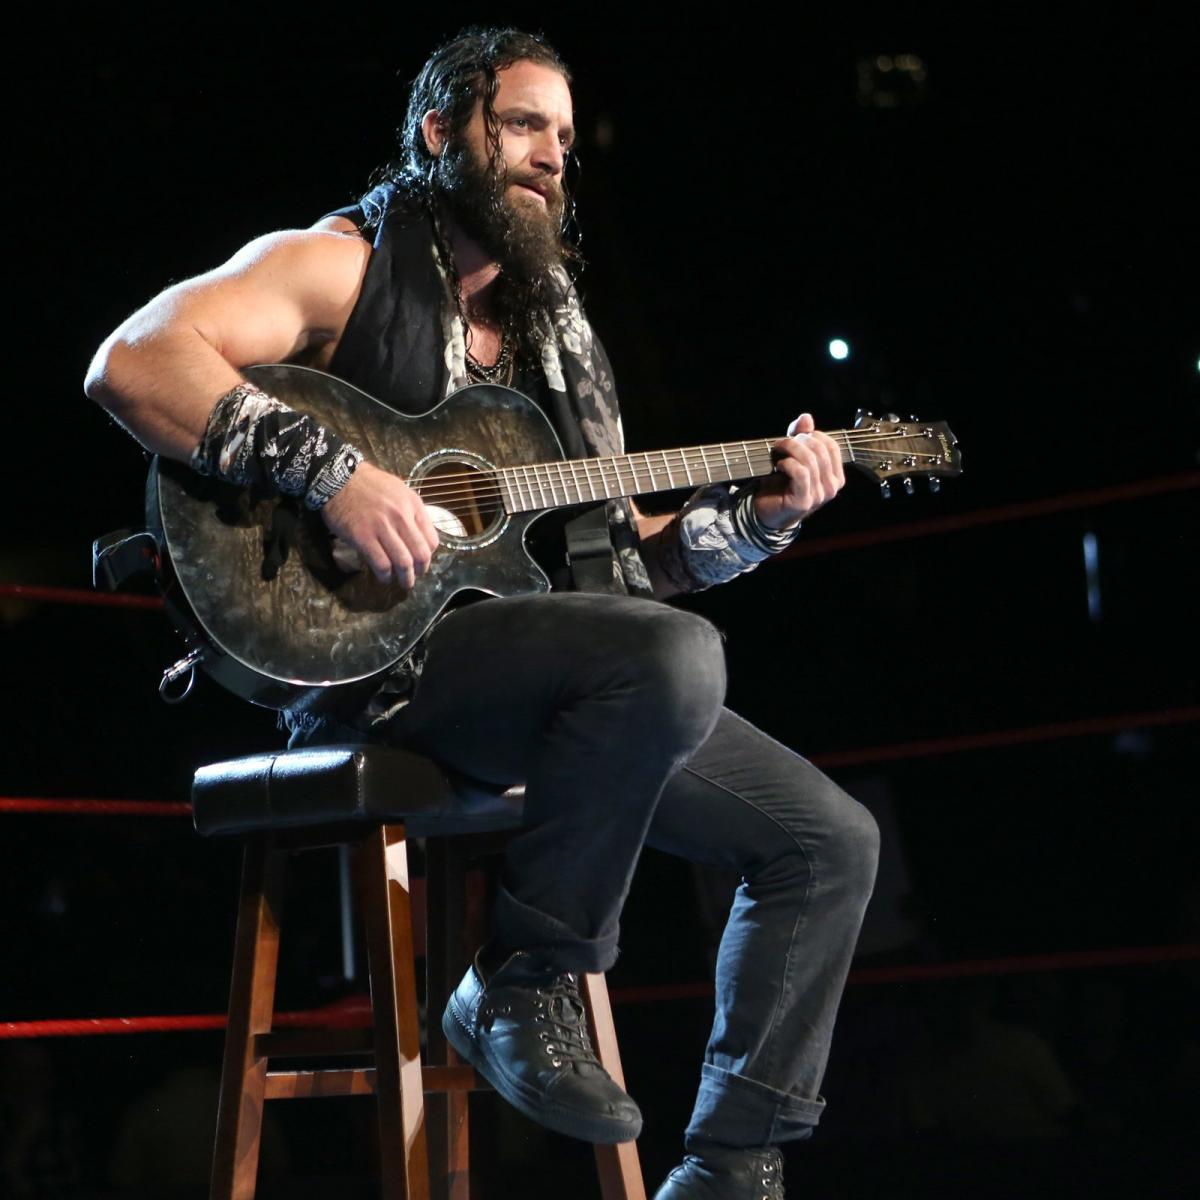 Elias wih guitar on WWE Raw